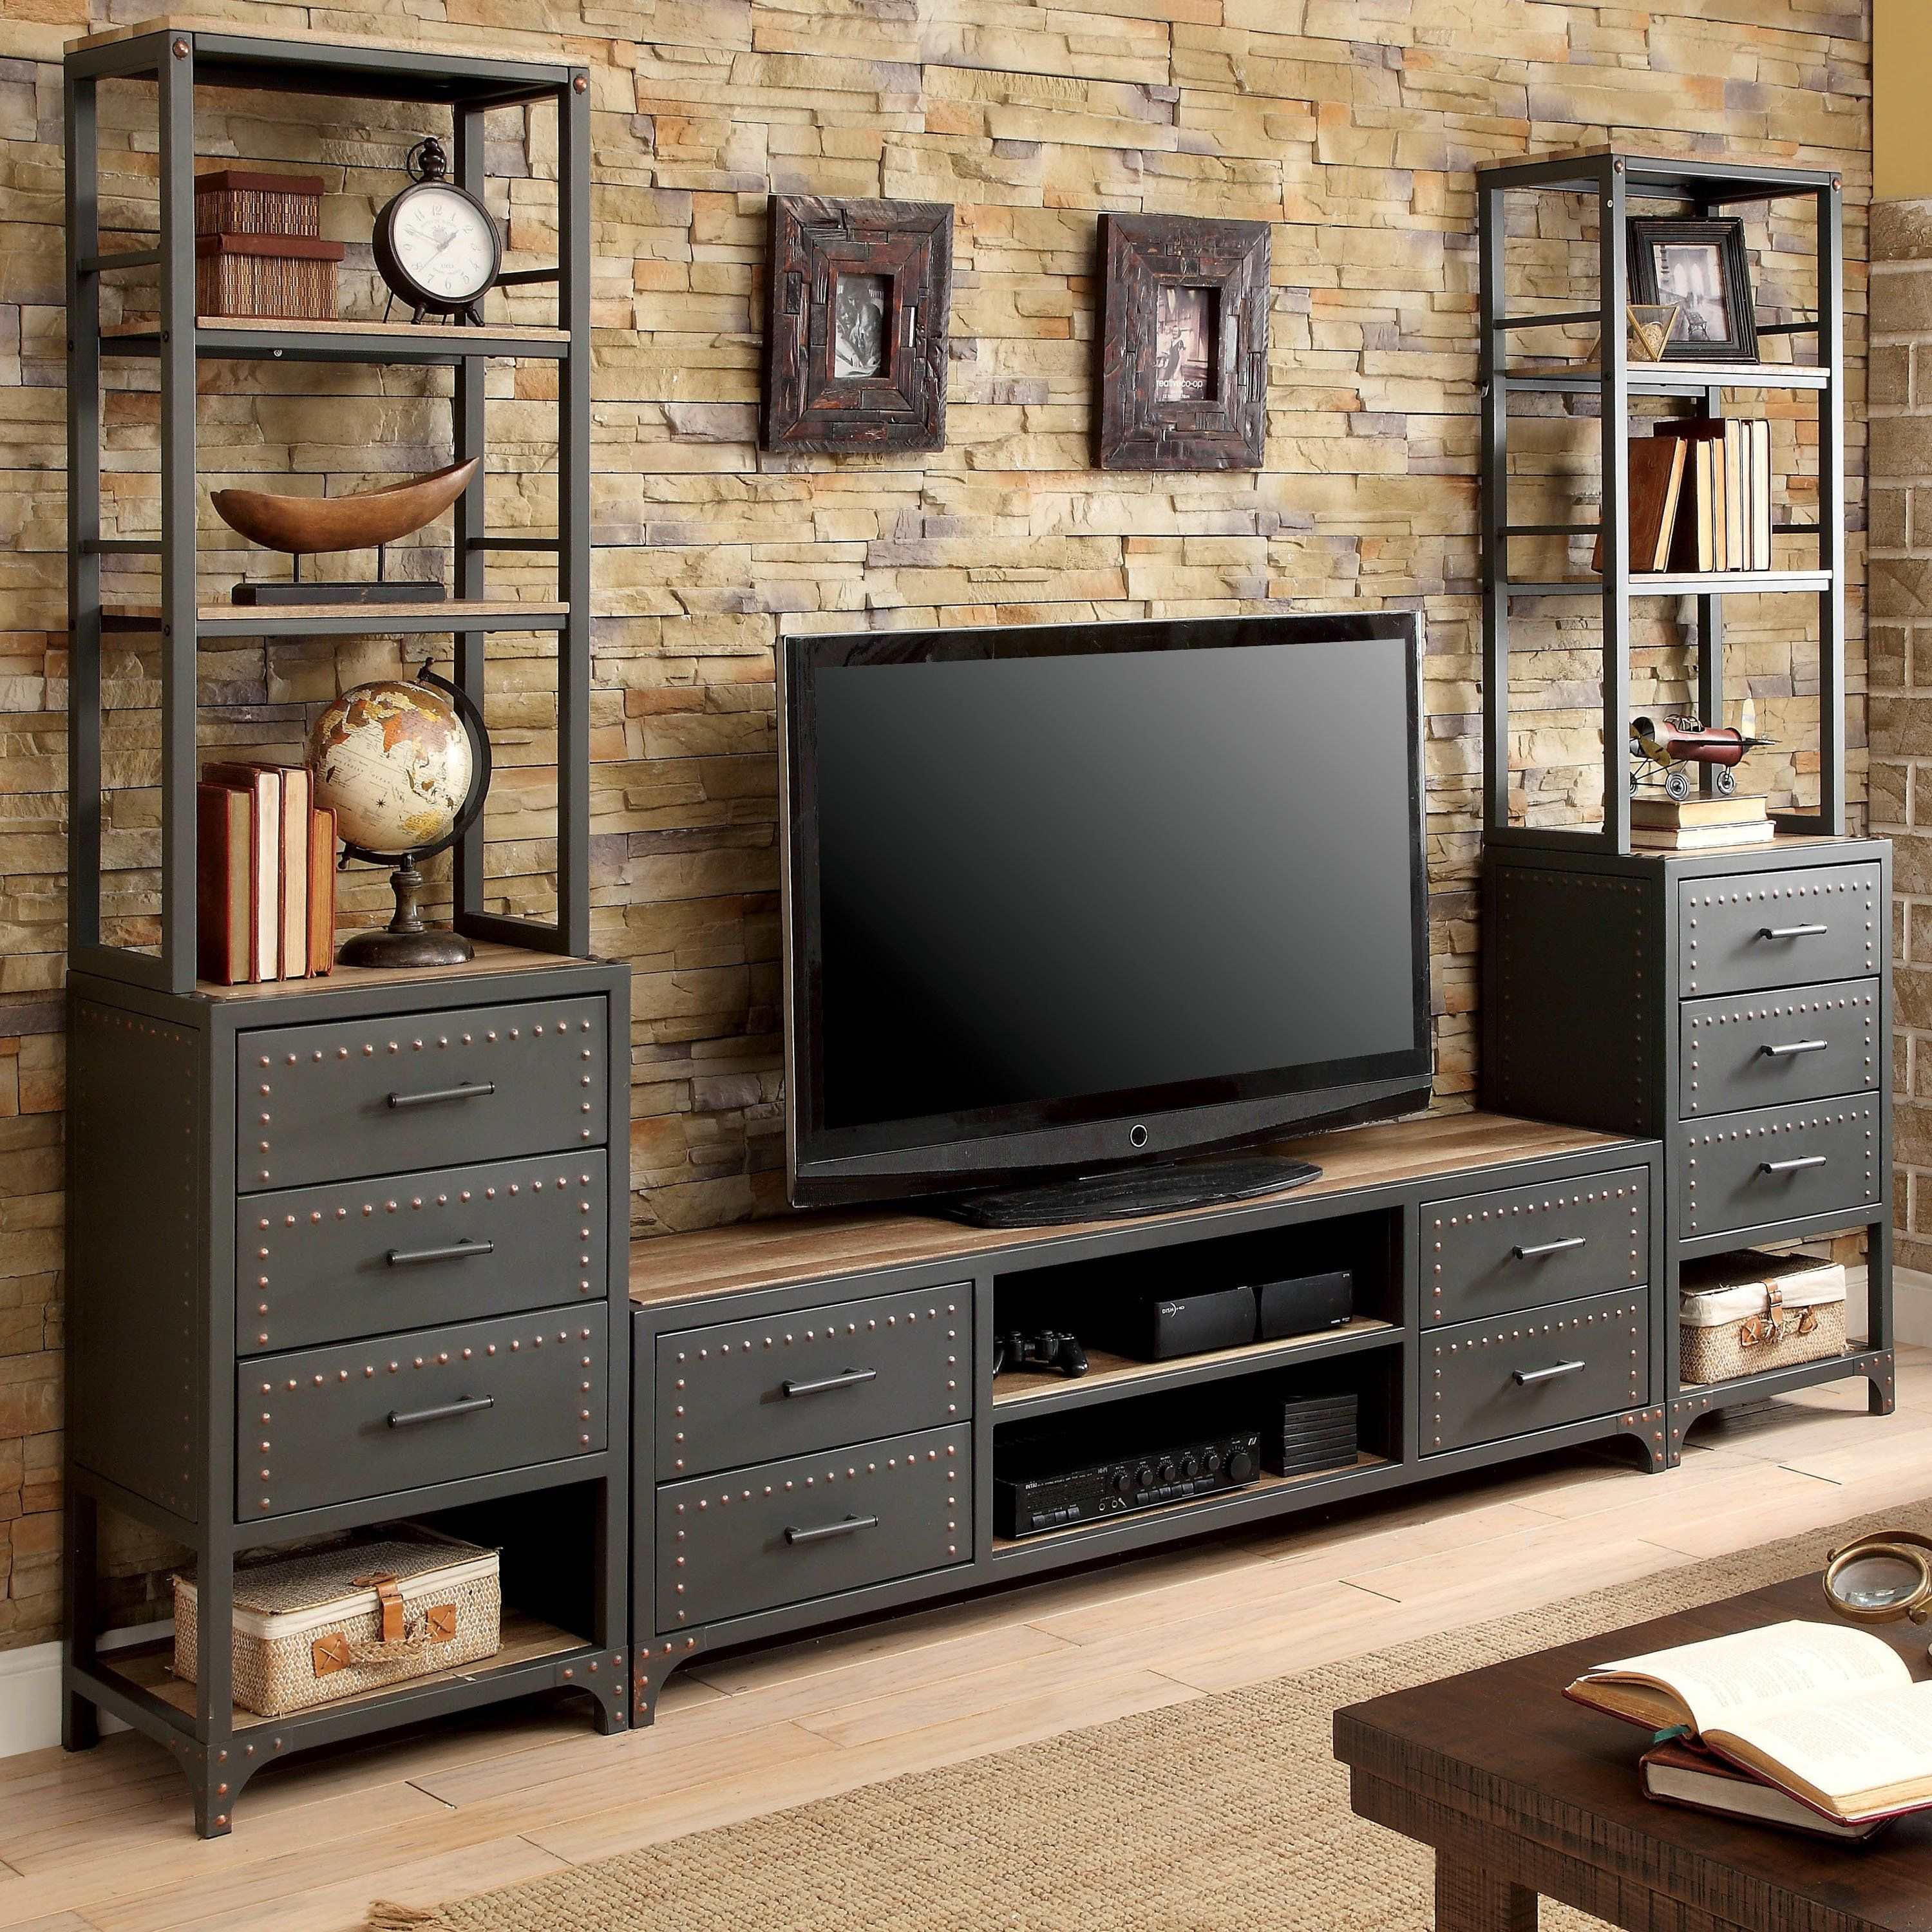 55 Industrial Style Tv Stand Modern Entertainment Center Metal Entertainment Center Entertainment Center Wall Unit